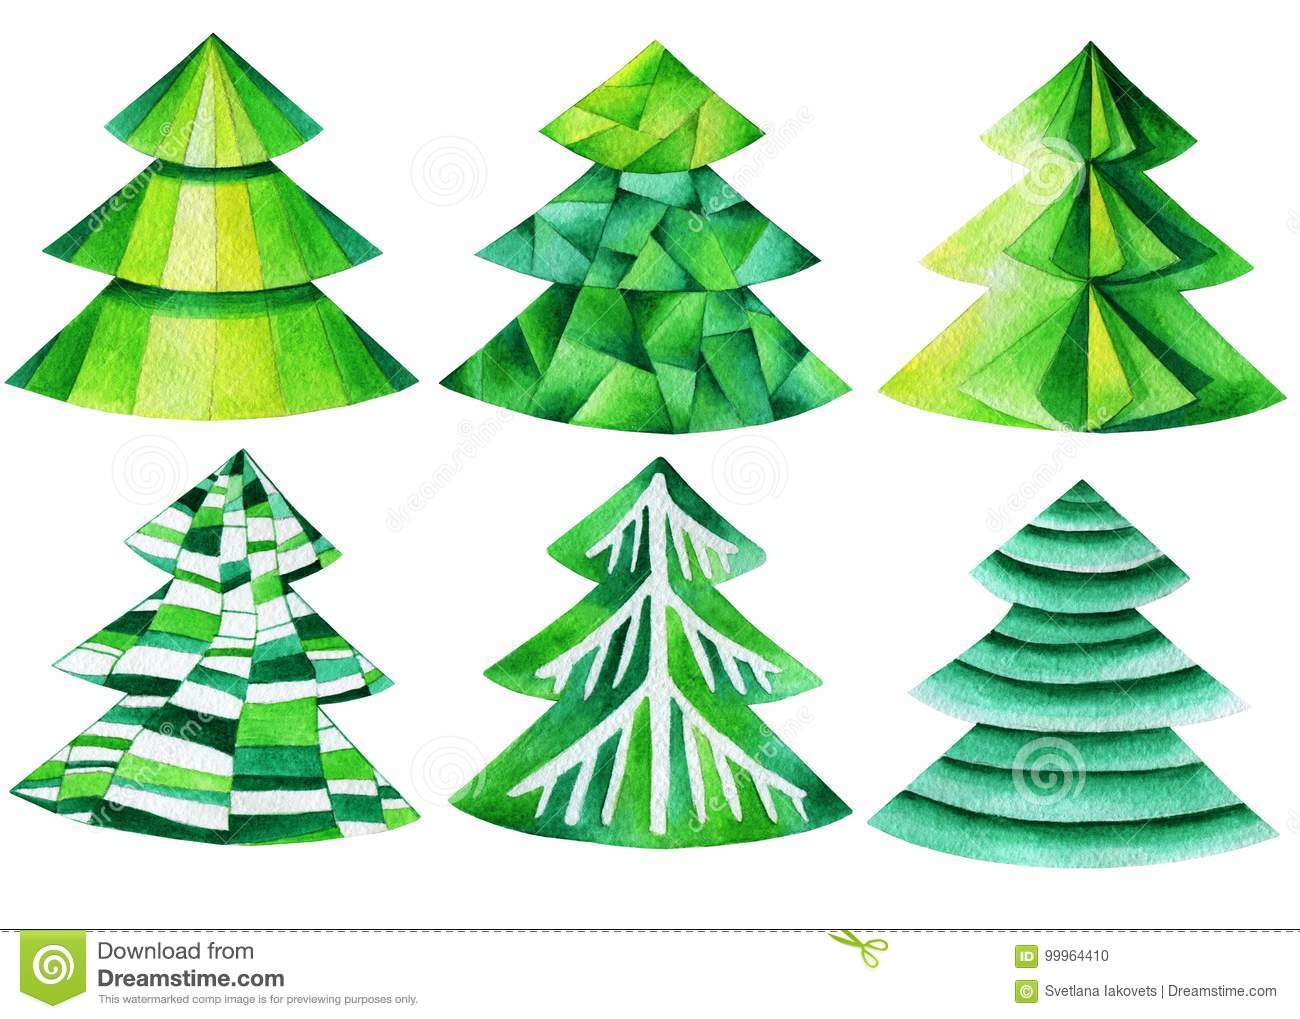 What Is The Symbolism Of The Christmas Tree. Significance